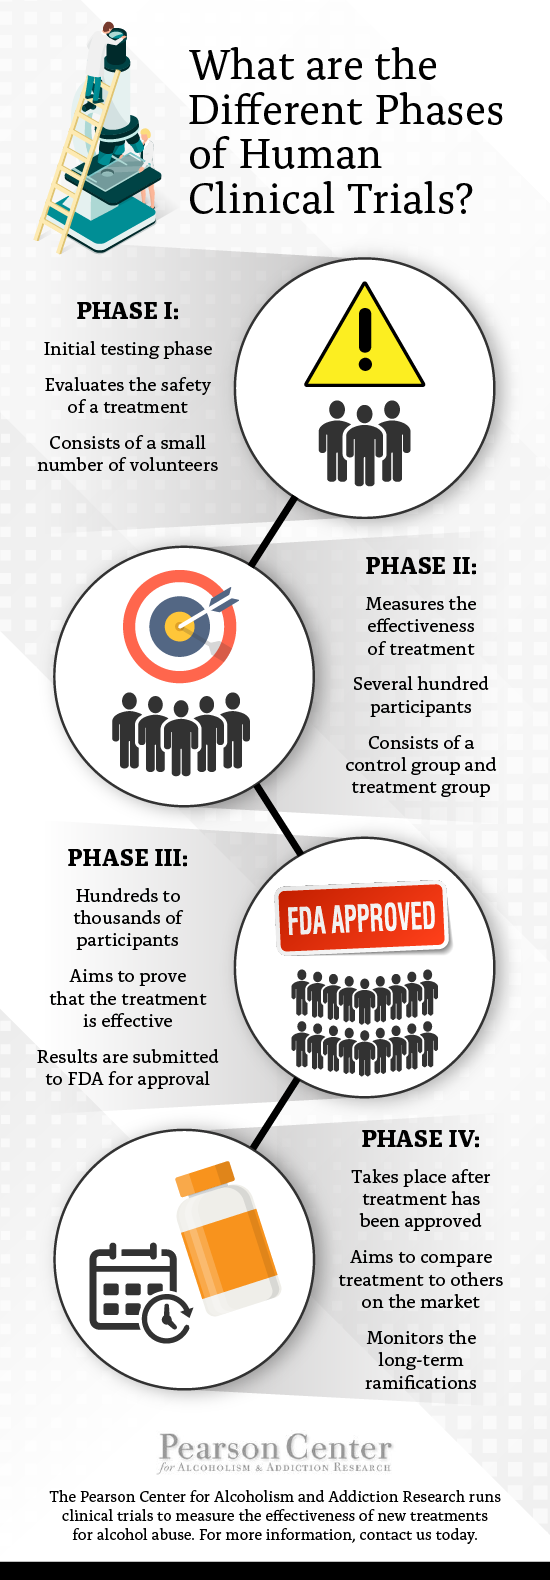 PEARSON-CENTER-phases-of-clinical-trials.png